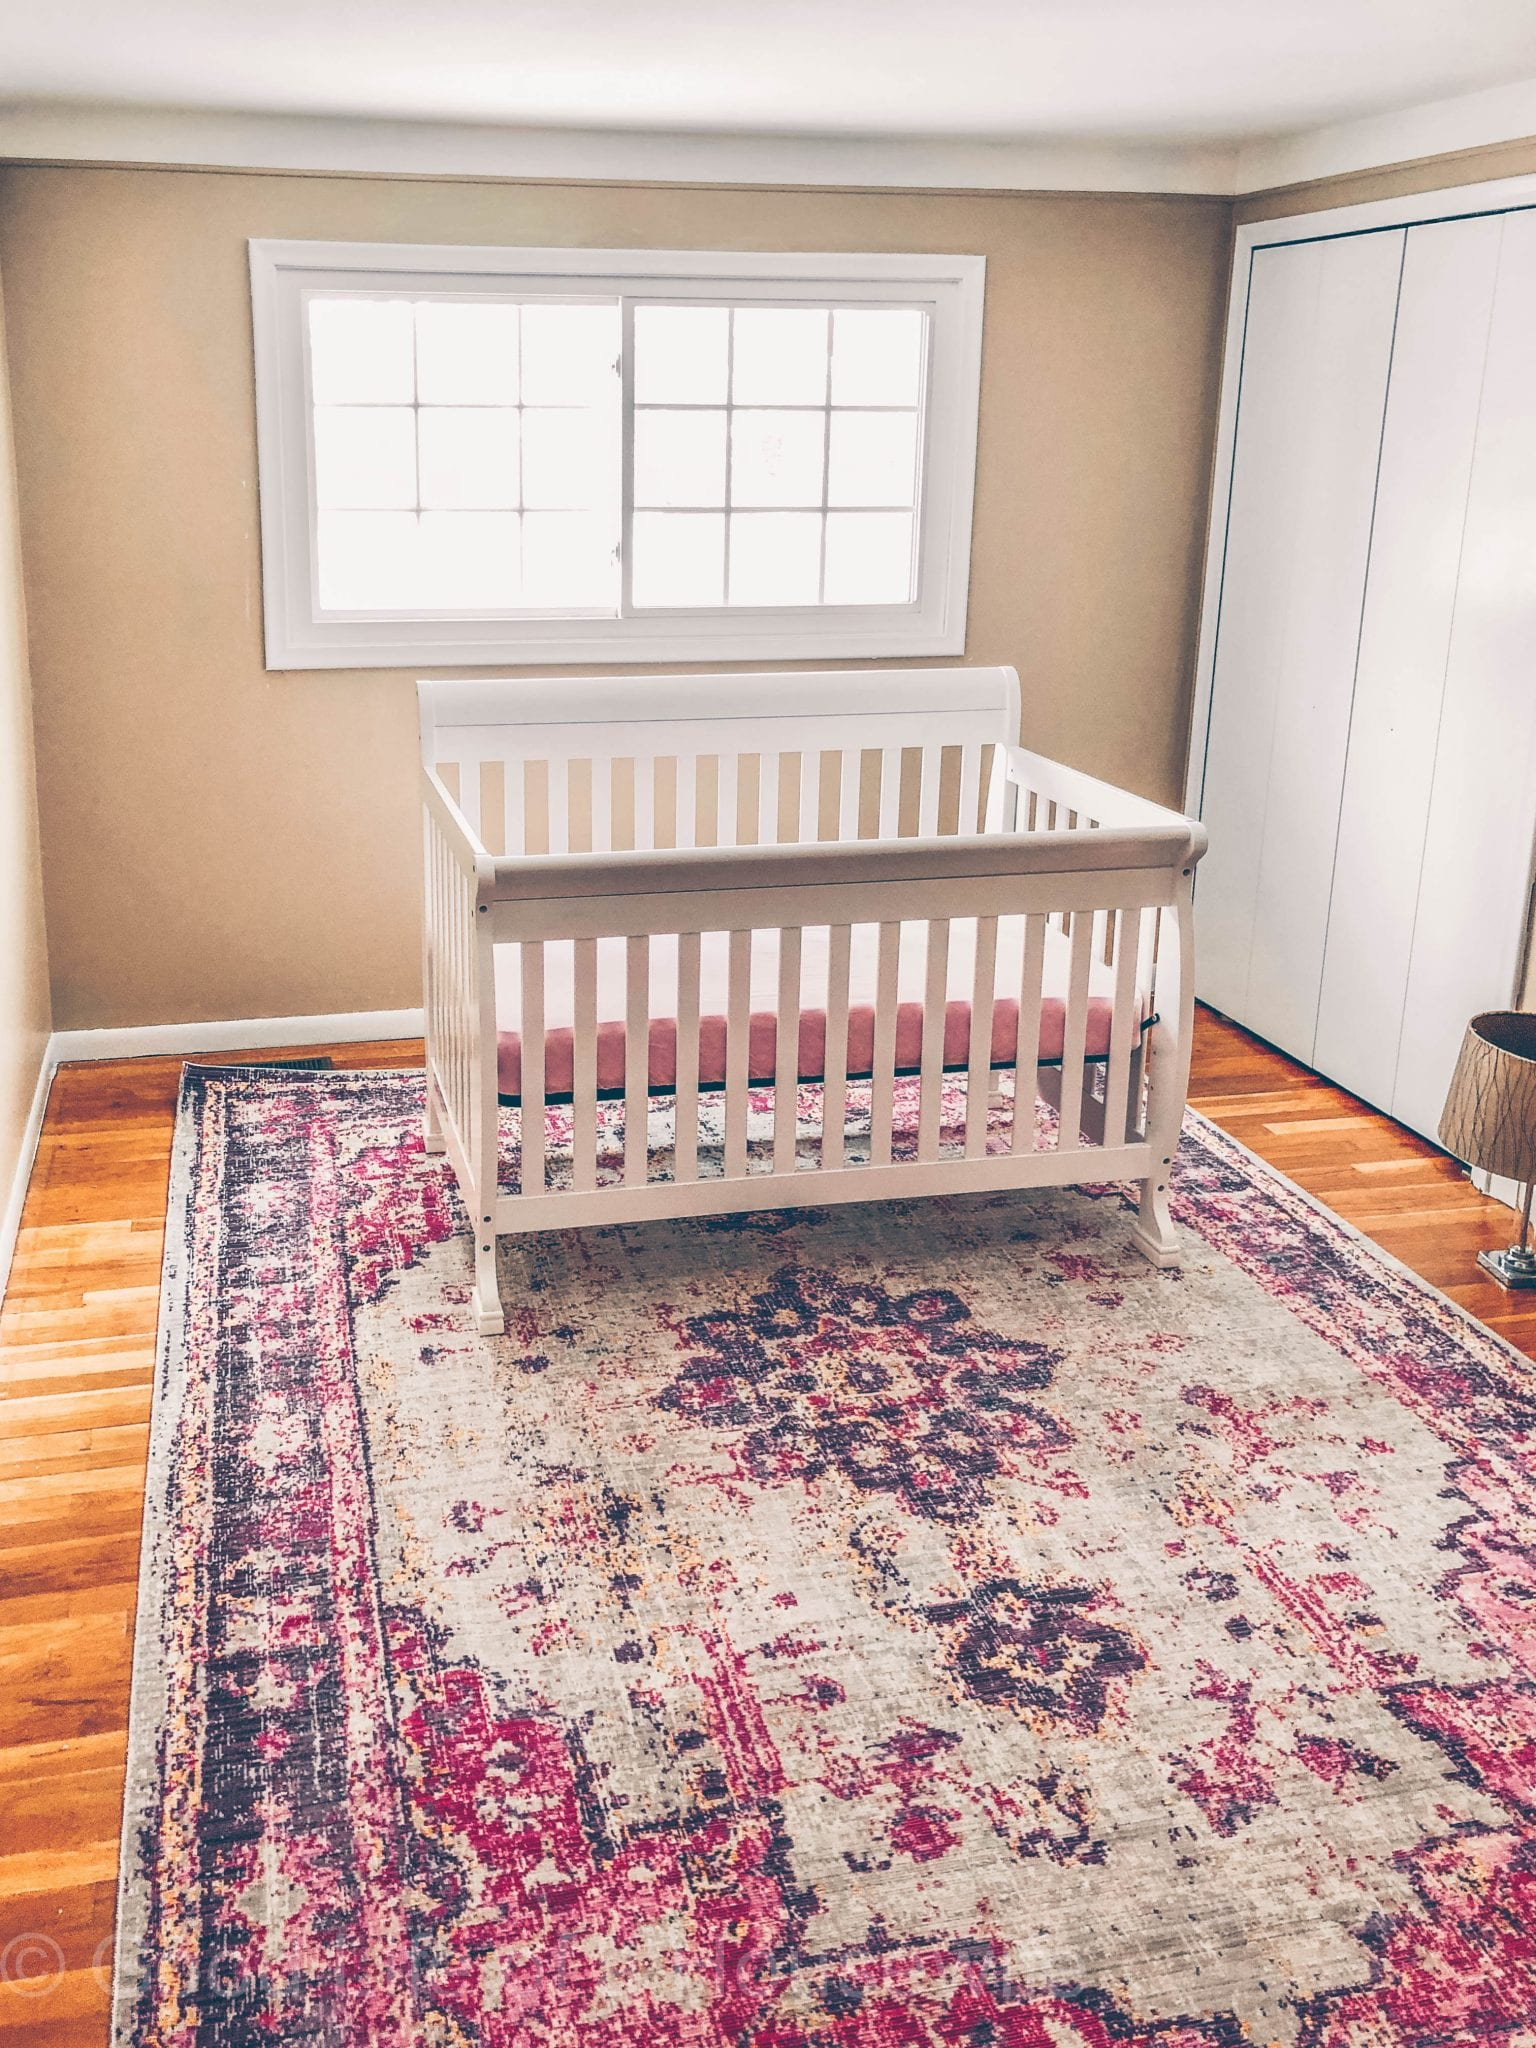 Two Things to Consider Before Buying a Crib